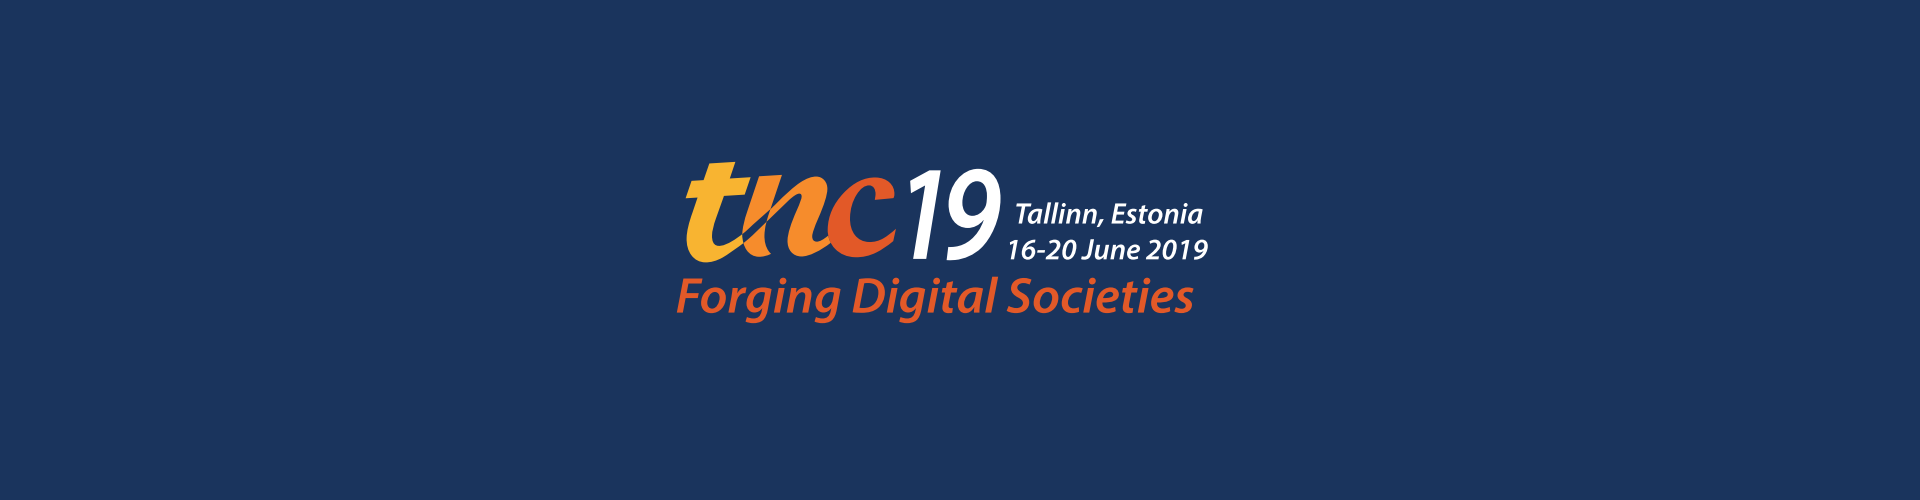 Meet Us - TNC19 Tallinn, Estonia